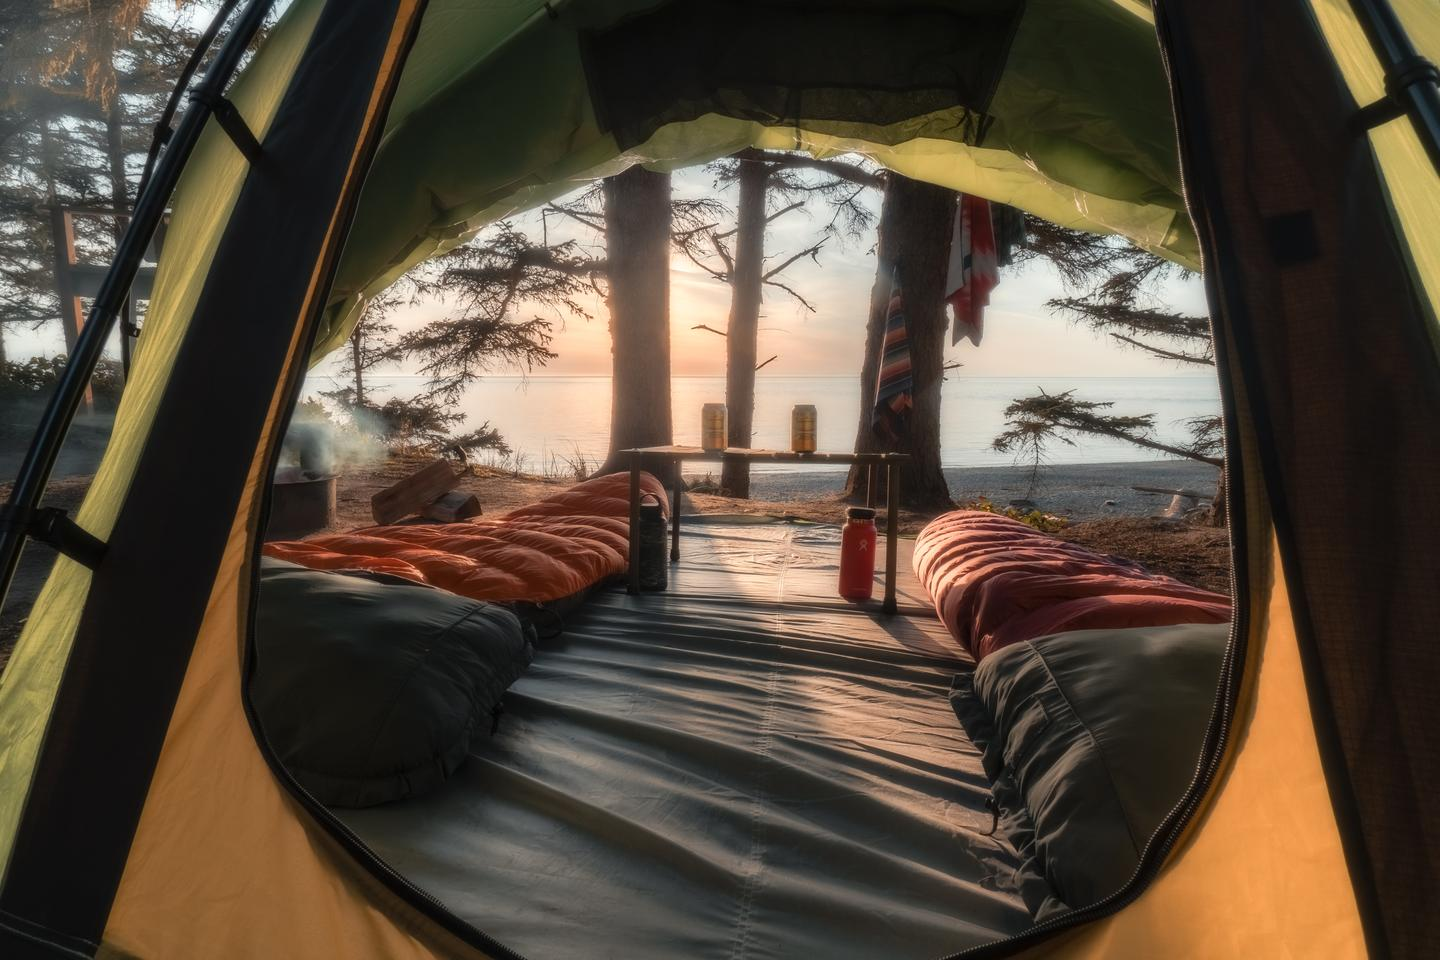 The view through the rear window of the opened-up Campo Escape M4 is unlike that of any other tent